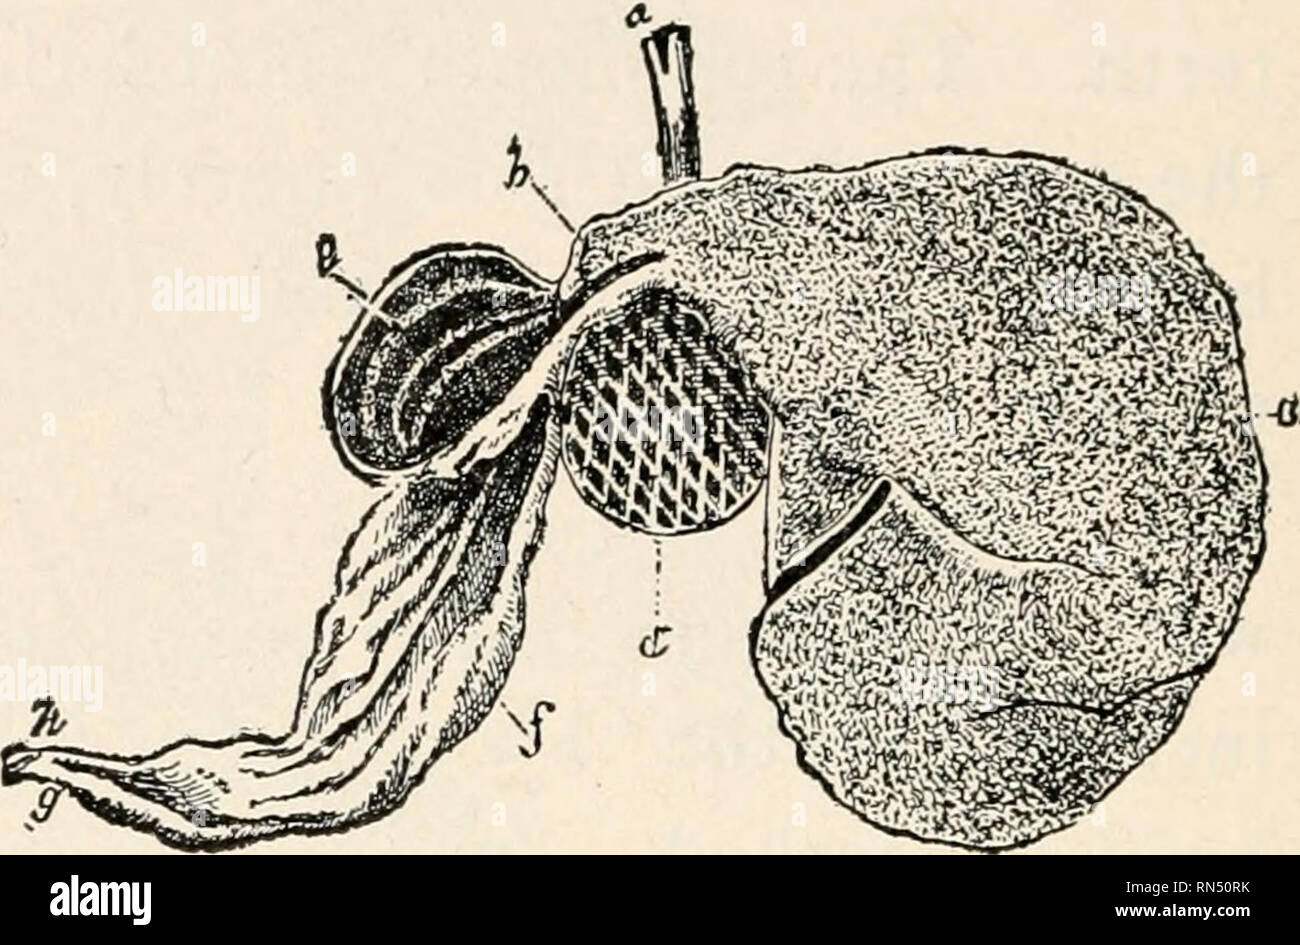 https://www alamy com/animal-biology-human-biology-parts-ii-amp-iii-of-first-course-in-biology-biology-fig-387-food-traced-through-stomachs-of-cow-follow-arrows-fig-388-section-of-cows-stomachs-identify-each-see-text-it-passes-into-the-intestine-why-is-the-paunch-the-largest-compartment-in-the-figure-do-you-recognize-the-paunch-by-its-size-the-honeycomb-by-its-lining-why-is-it-round-the-last-two-of-the-four-divisions-may-be-known-by-their-direct-connection-with-the-intestine-the-true-gastric-juice-is-secreted-only-in-the-fourth-stomach-since-the-cud-or-unchewed-food-is-belched-up-image236752983 html